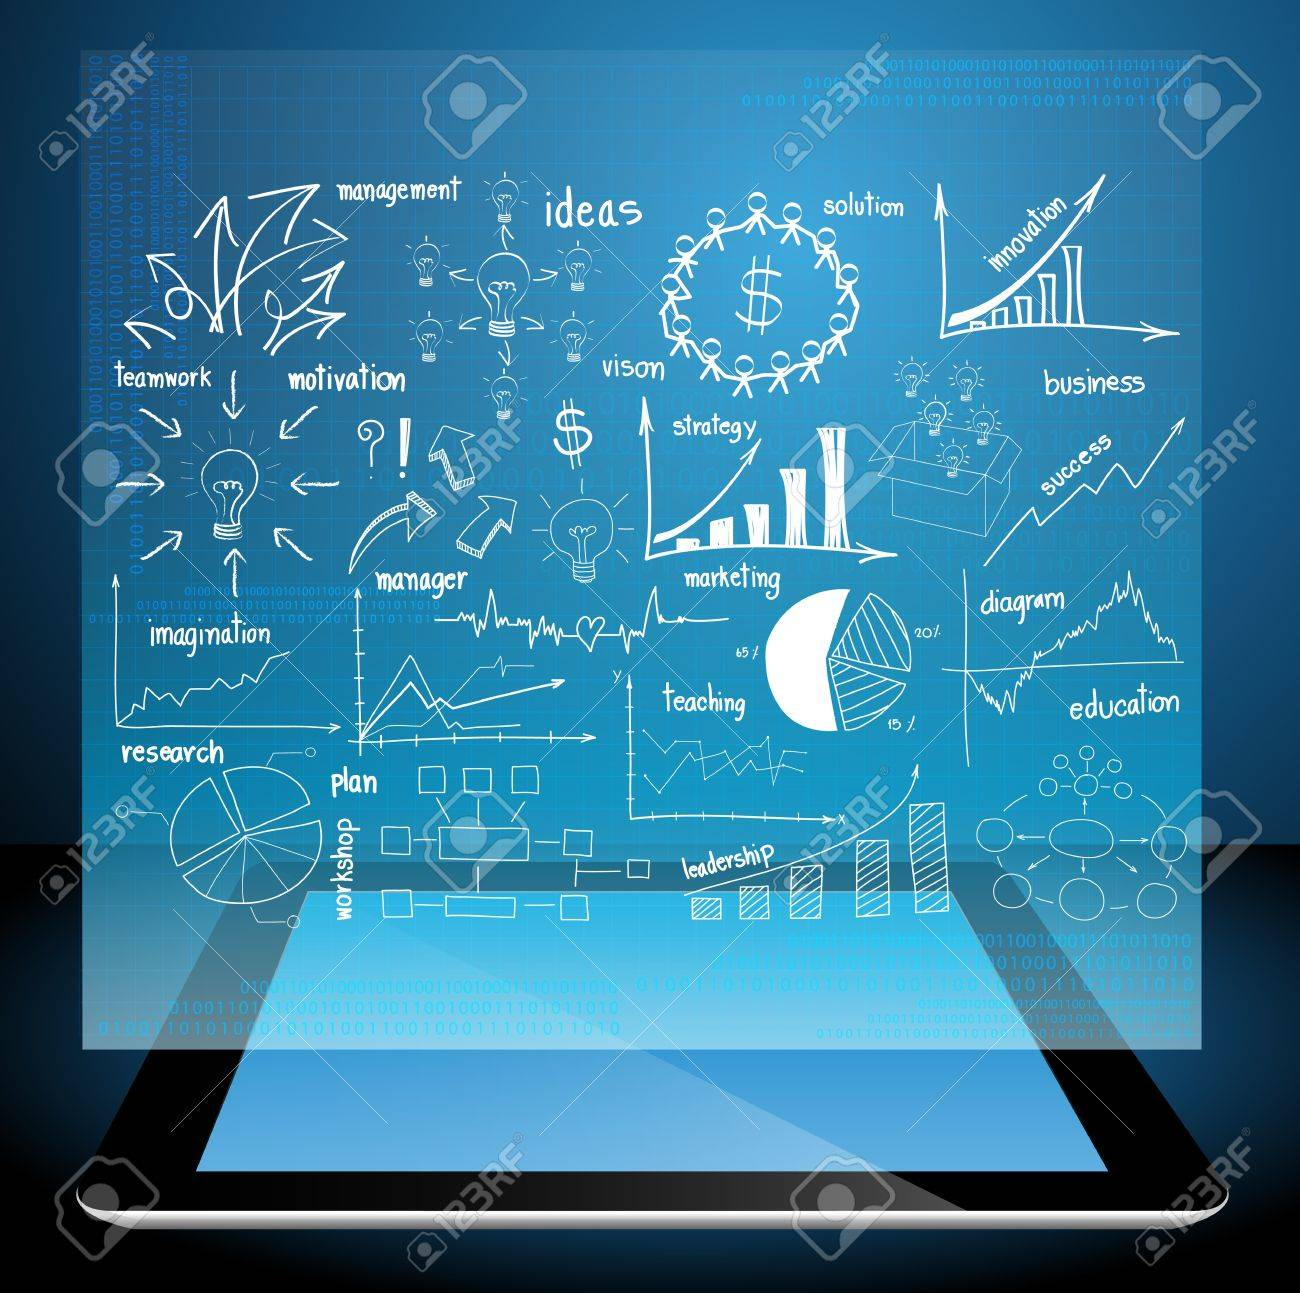 Computer Tablet Pc With Drawing Business Plan Concept Ideas Royalty